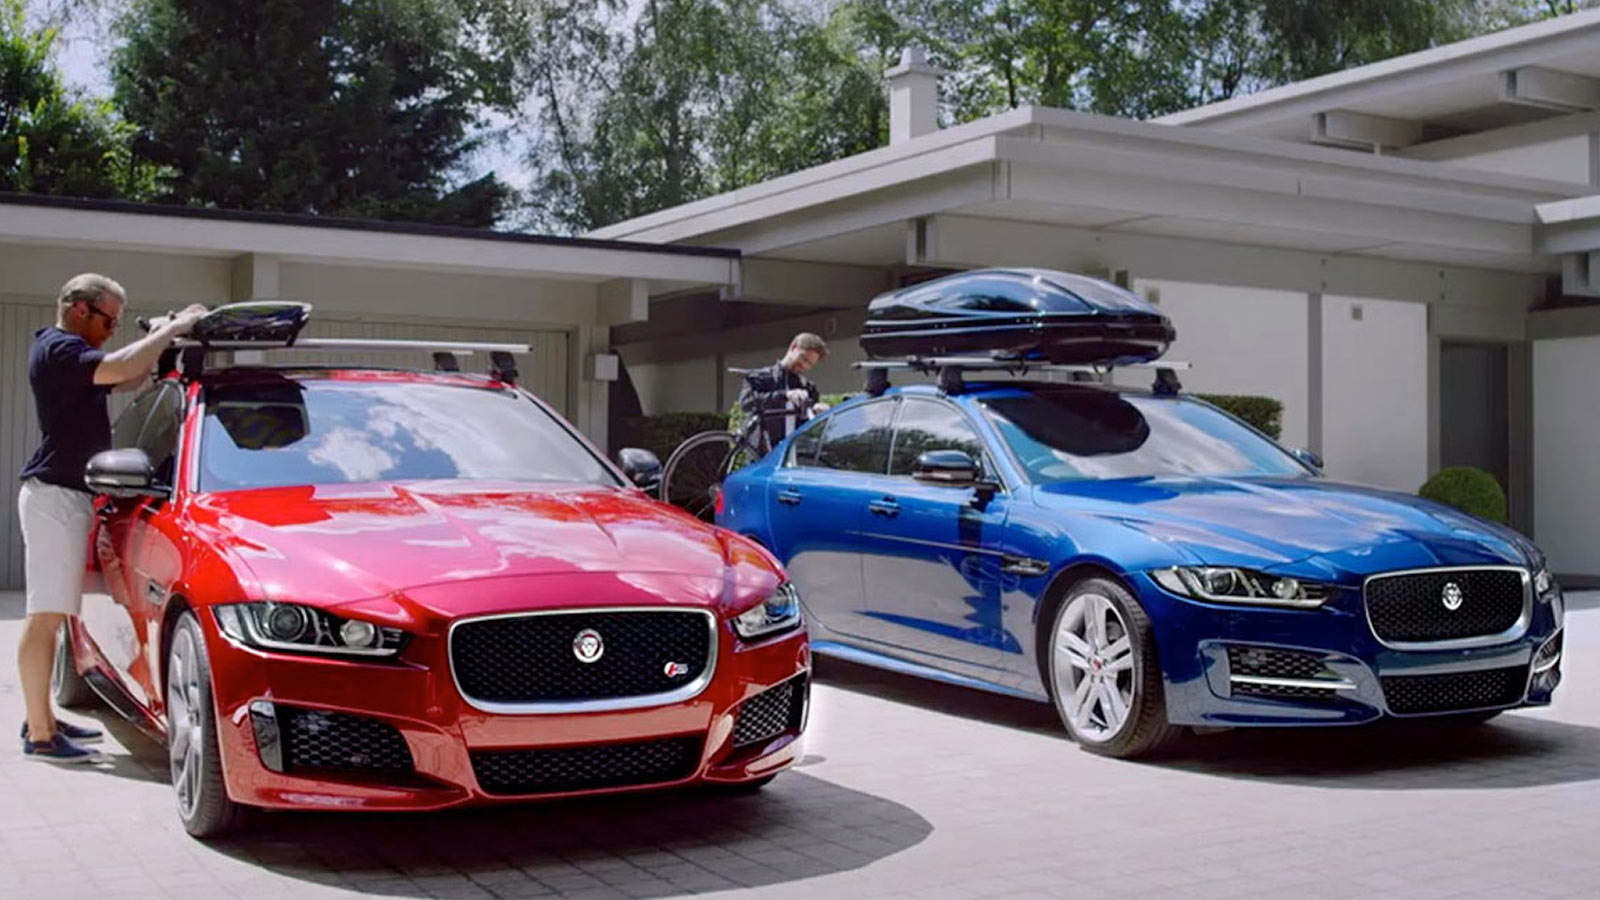 Red and blue Jaguars parked next to one another with the sunshine on them.